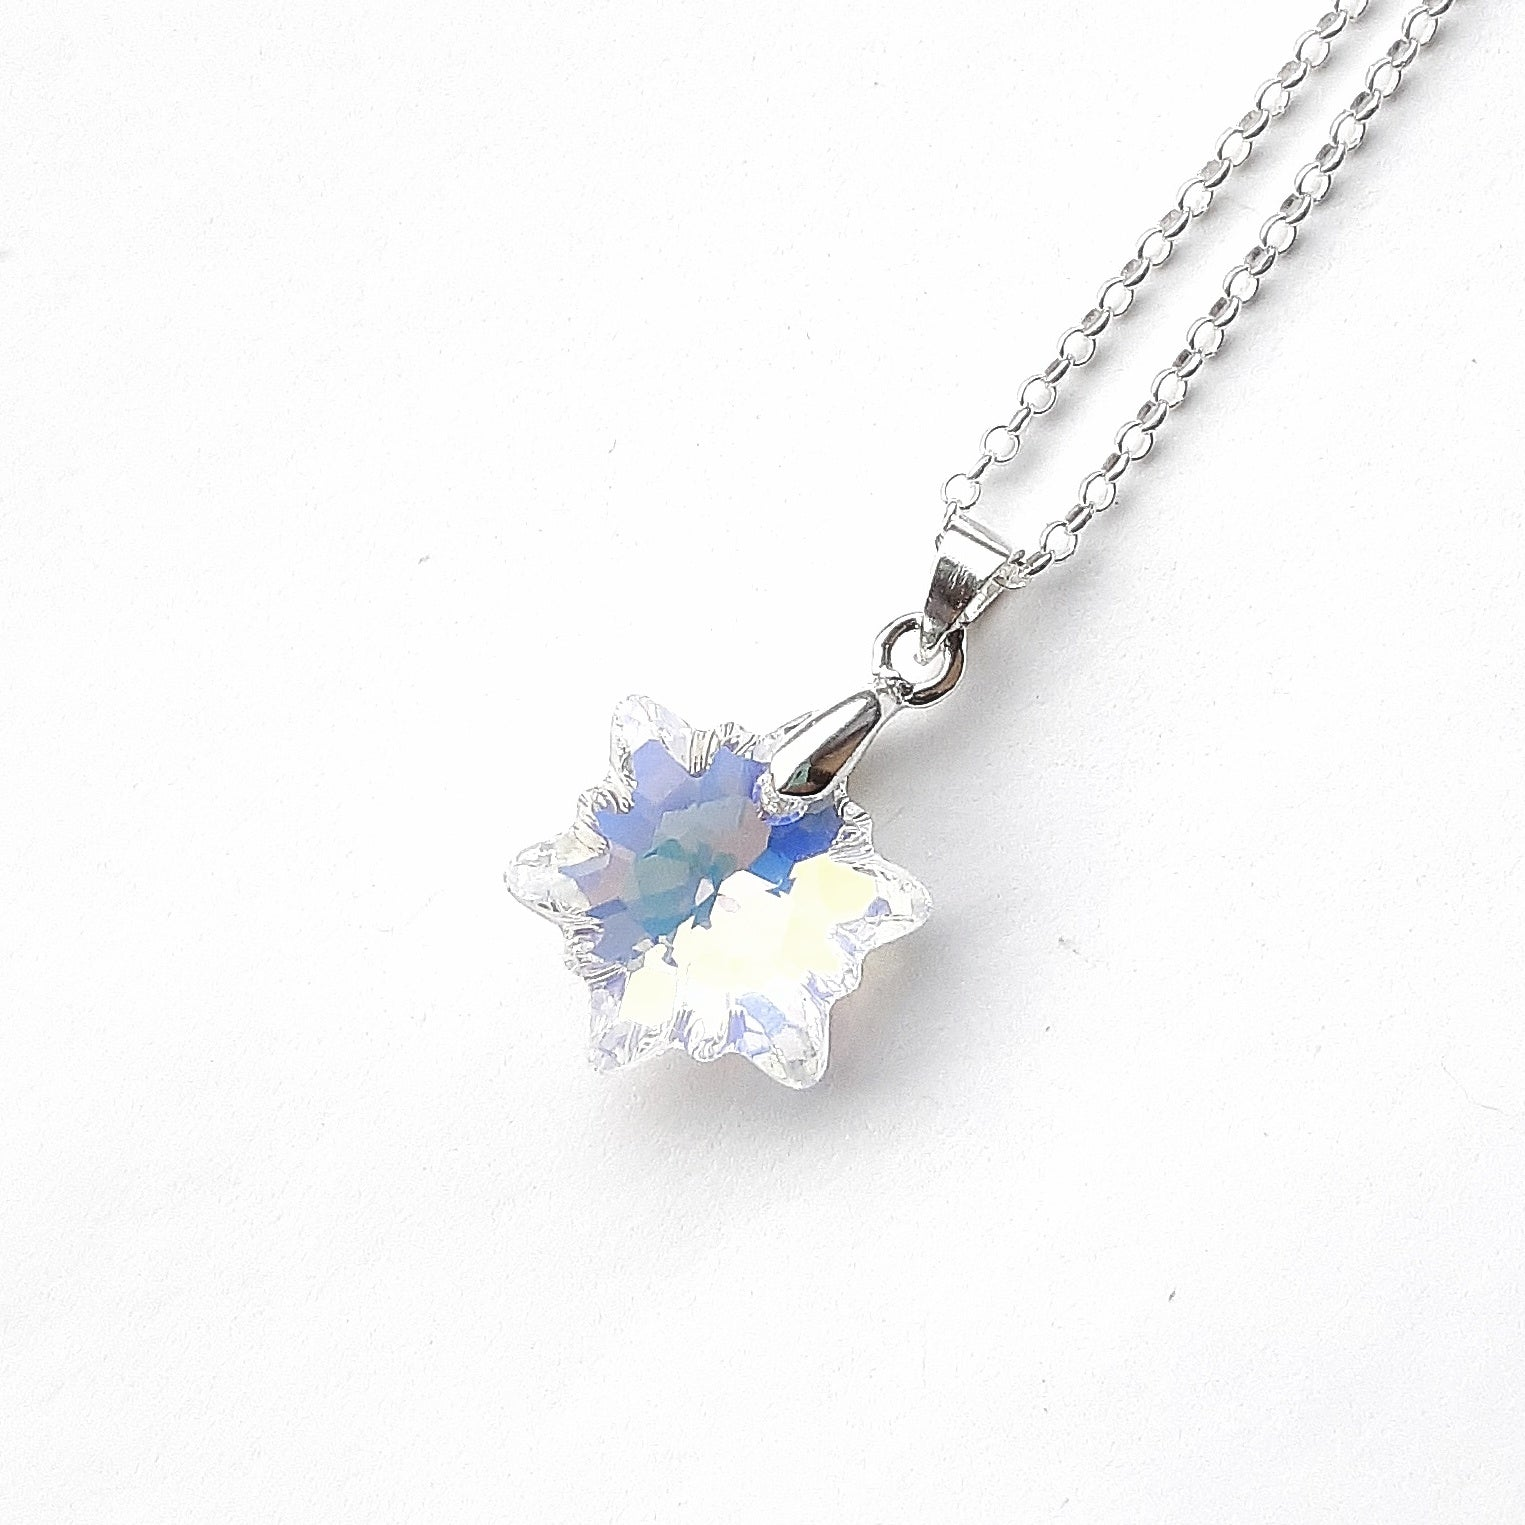 Swarovski Crystal Snowflake Necklace